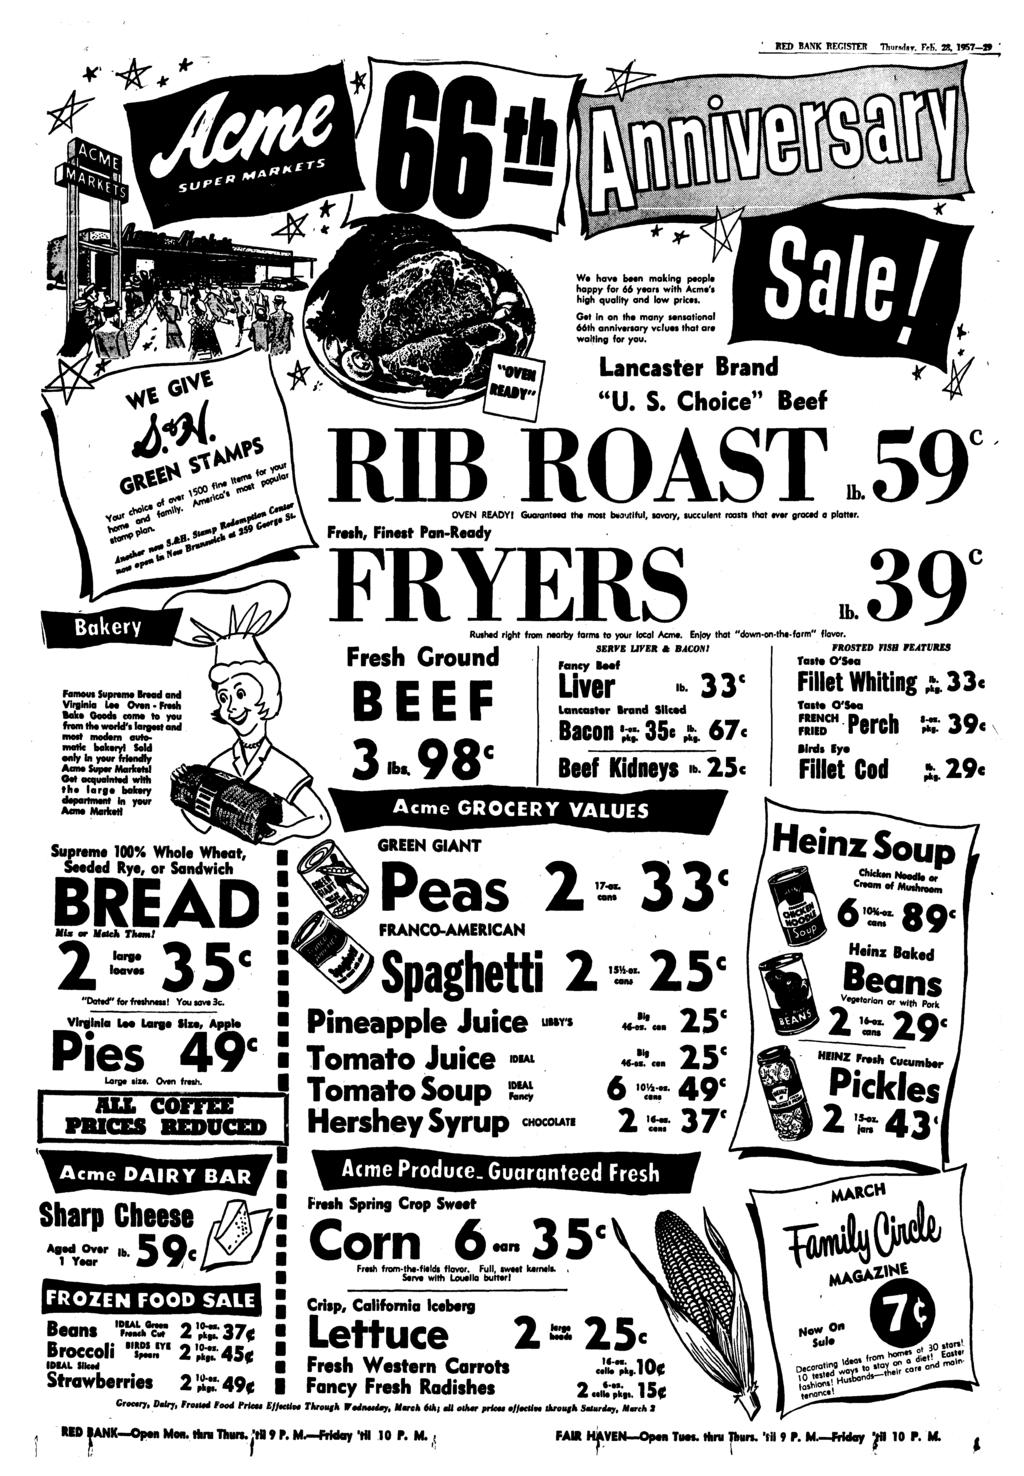 ' RED BANK REGISTER Thursdsr. FeB. 28, 1957 9 We have been making people happy for 66 yean with Acme's high quality and low prices.